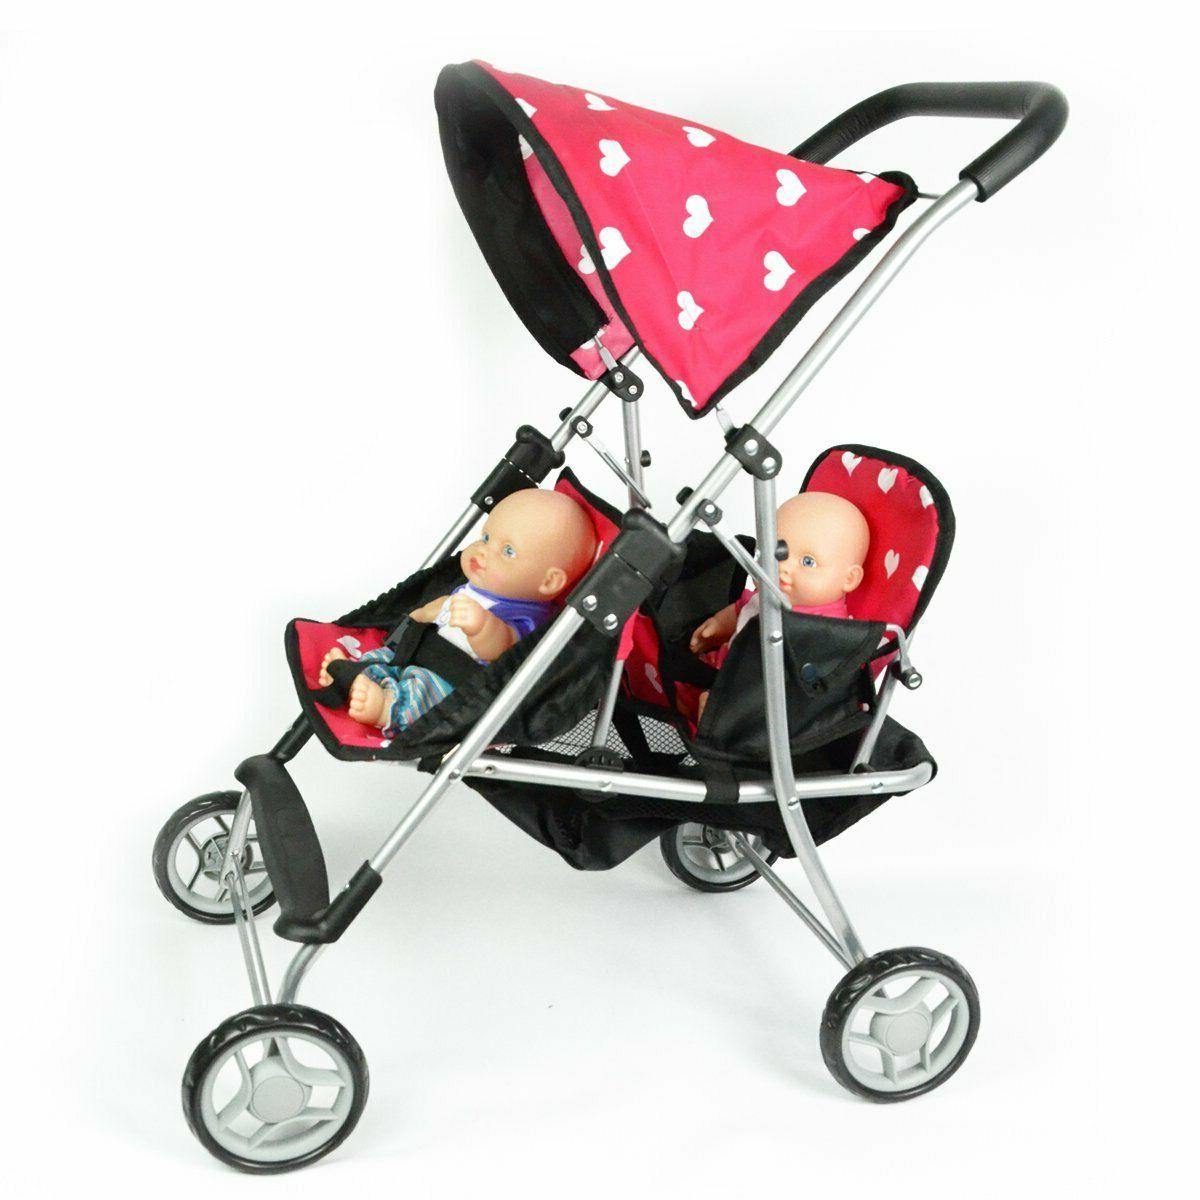 Disney Mickey Mouse Baby Umbrella Stroller With Canopy Light